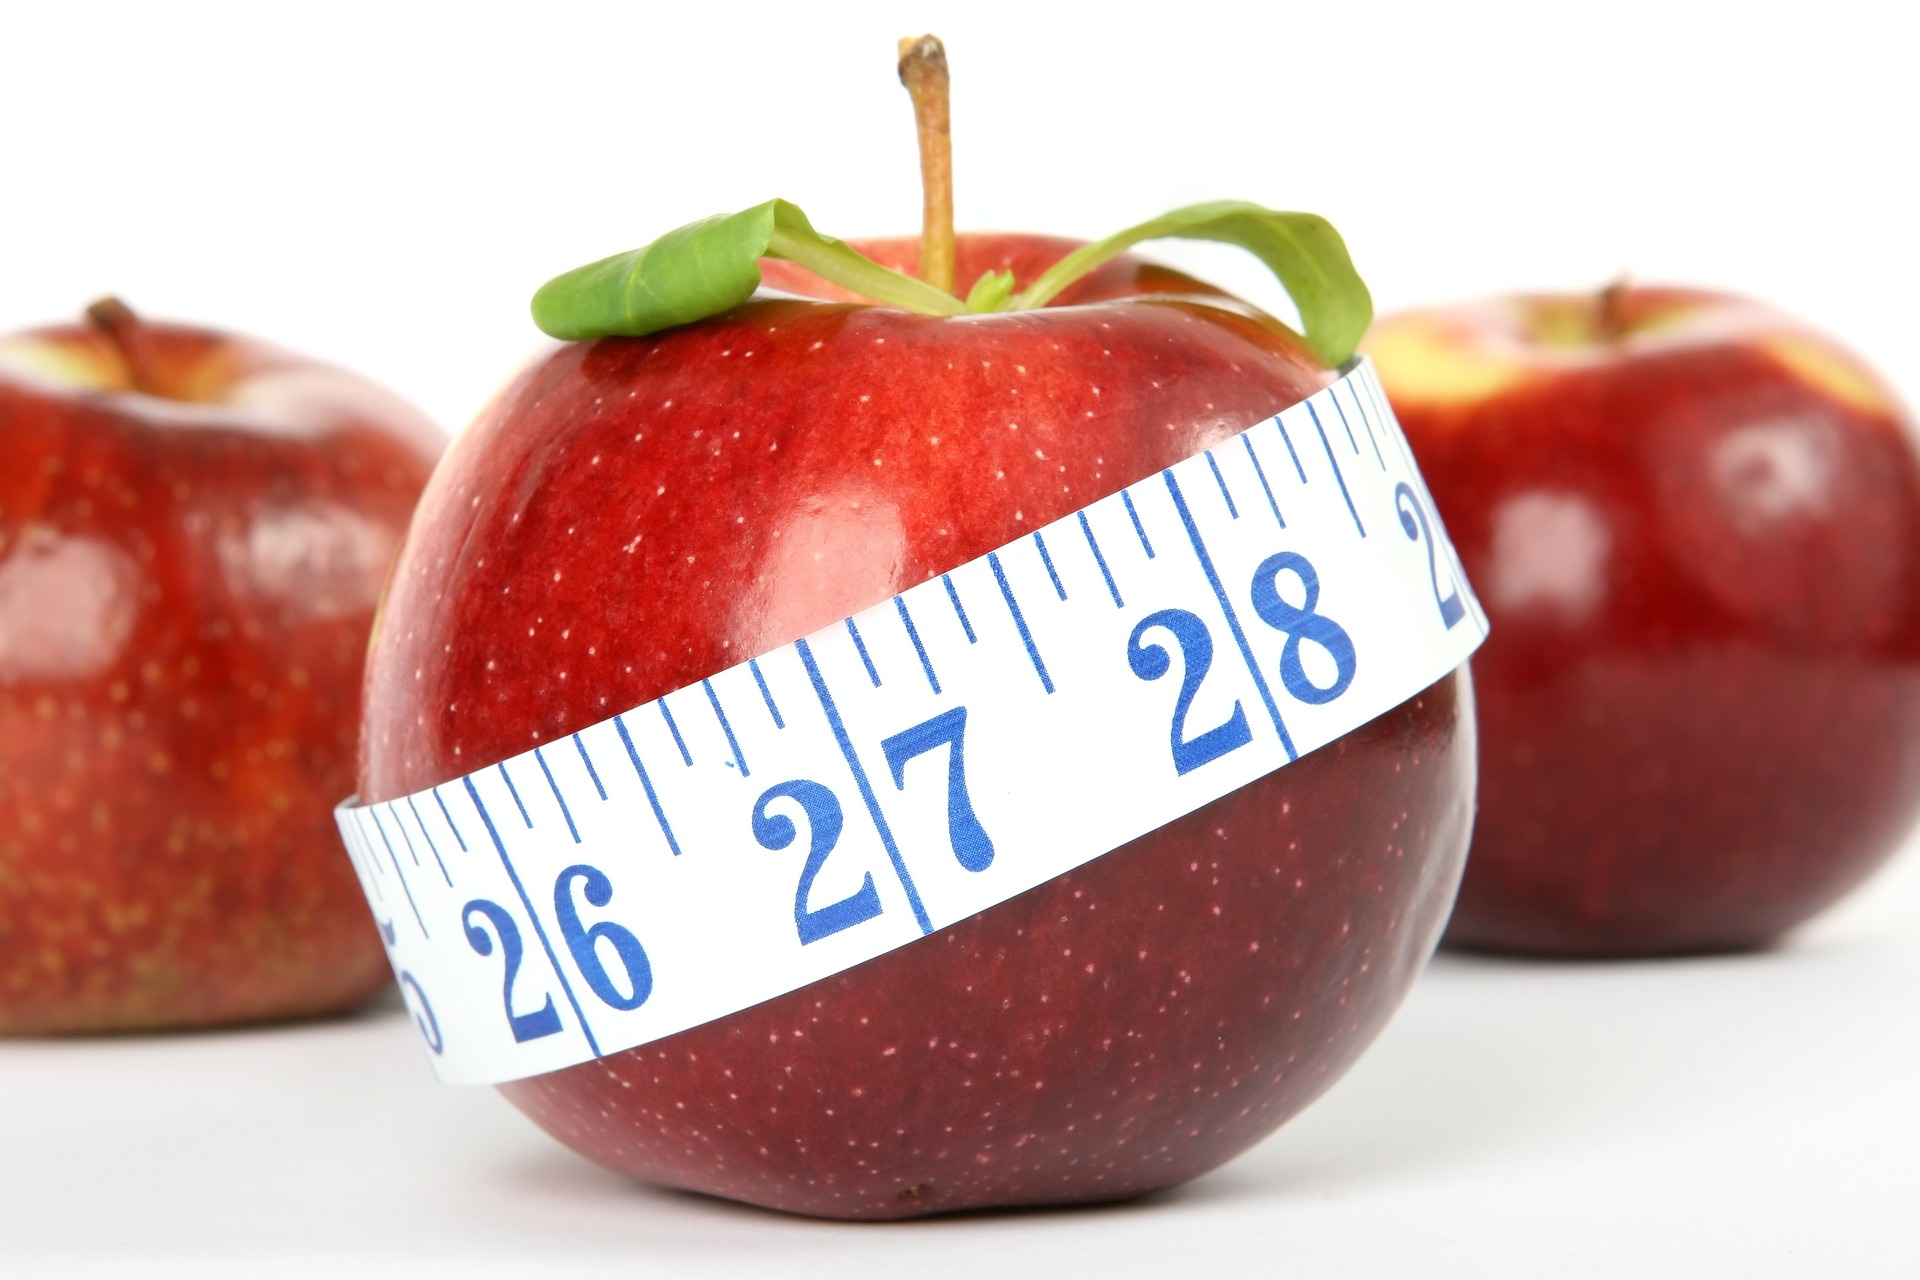 Get Healthy After the Holidays   by Stacey Mattinson, MS, RDN, LD